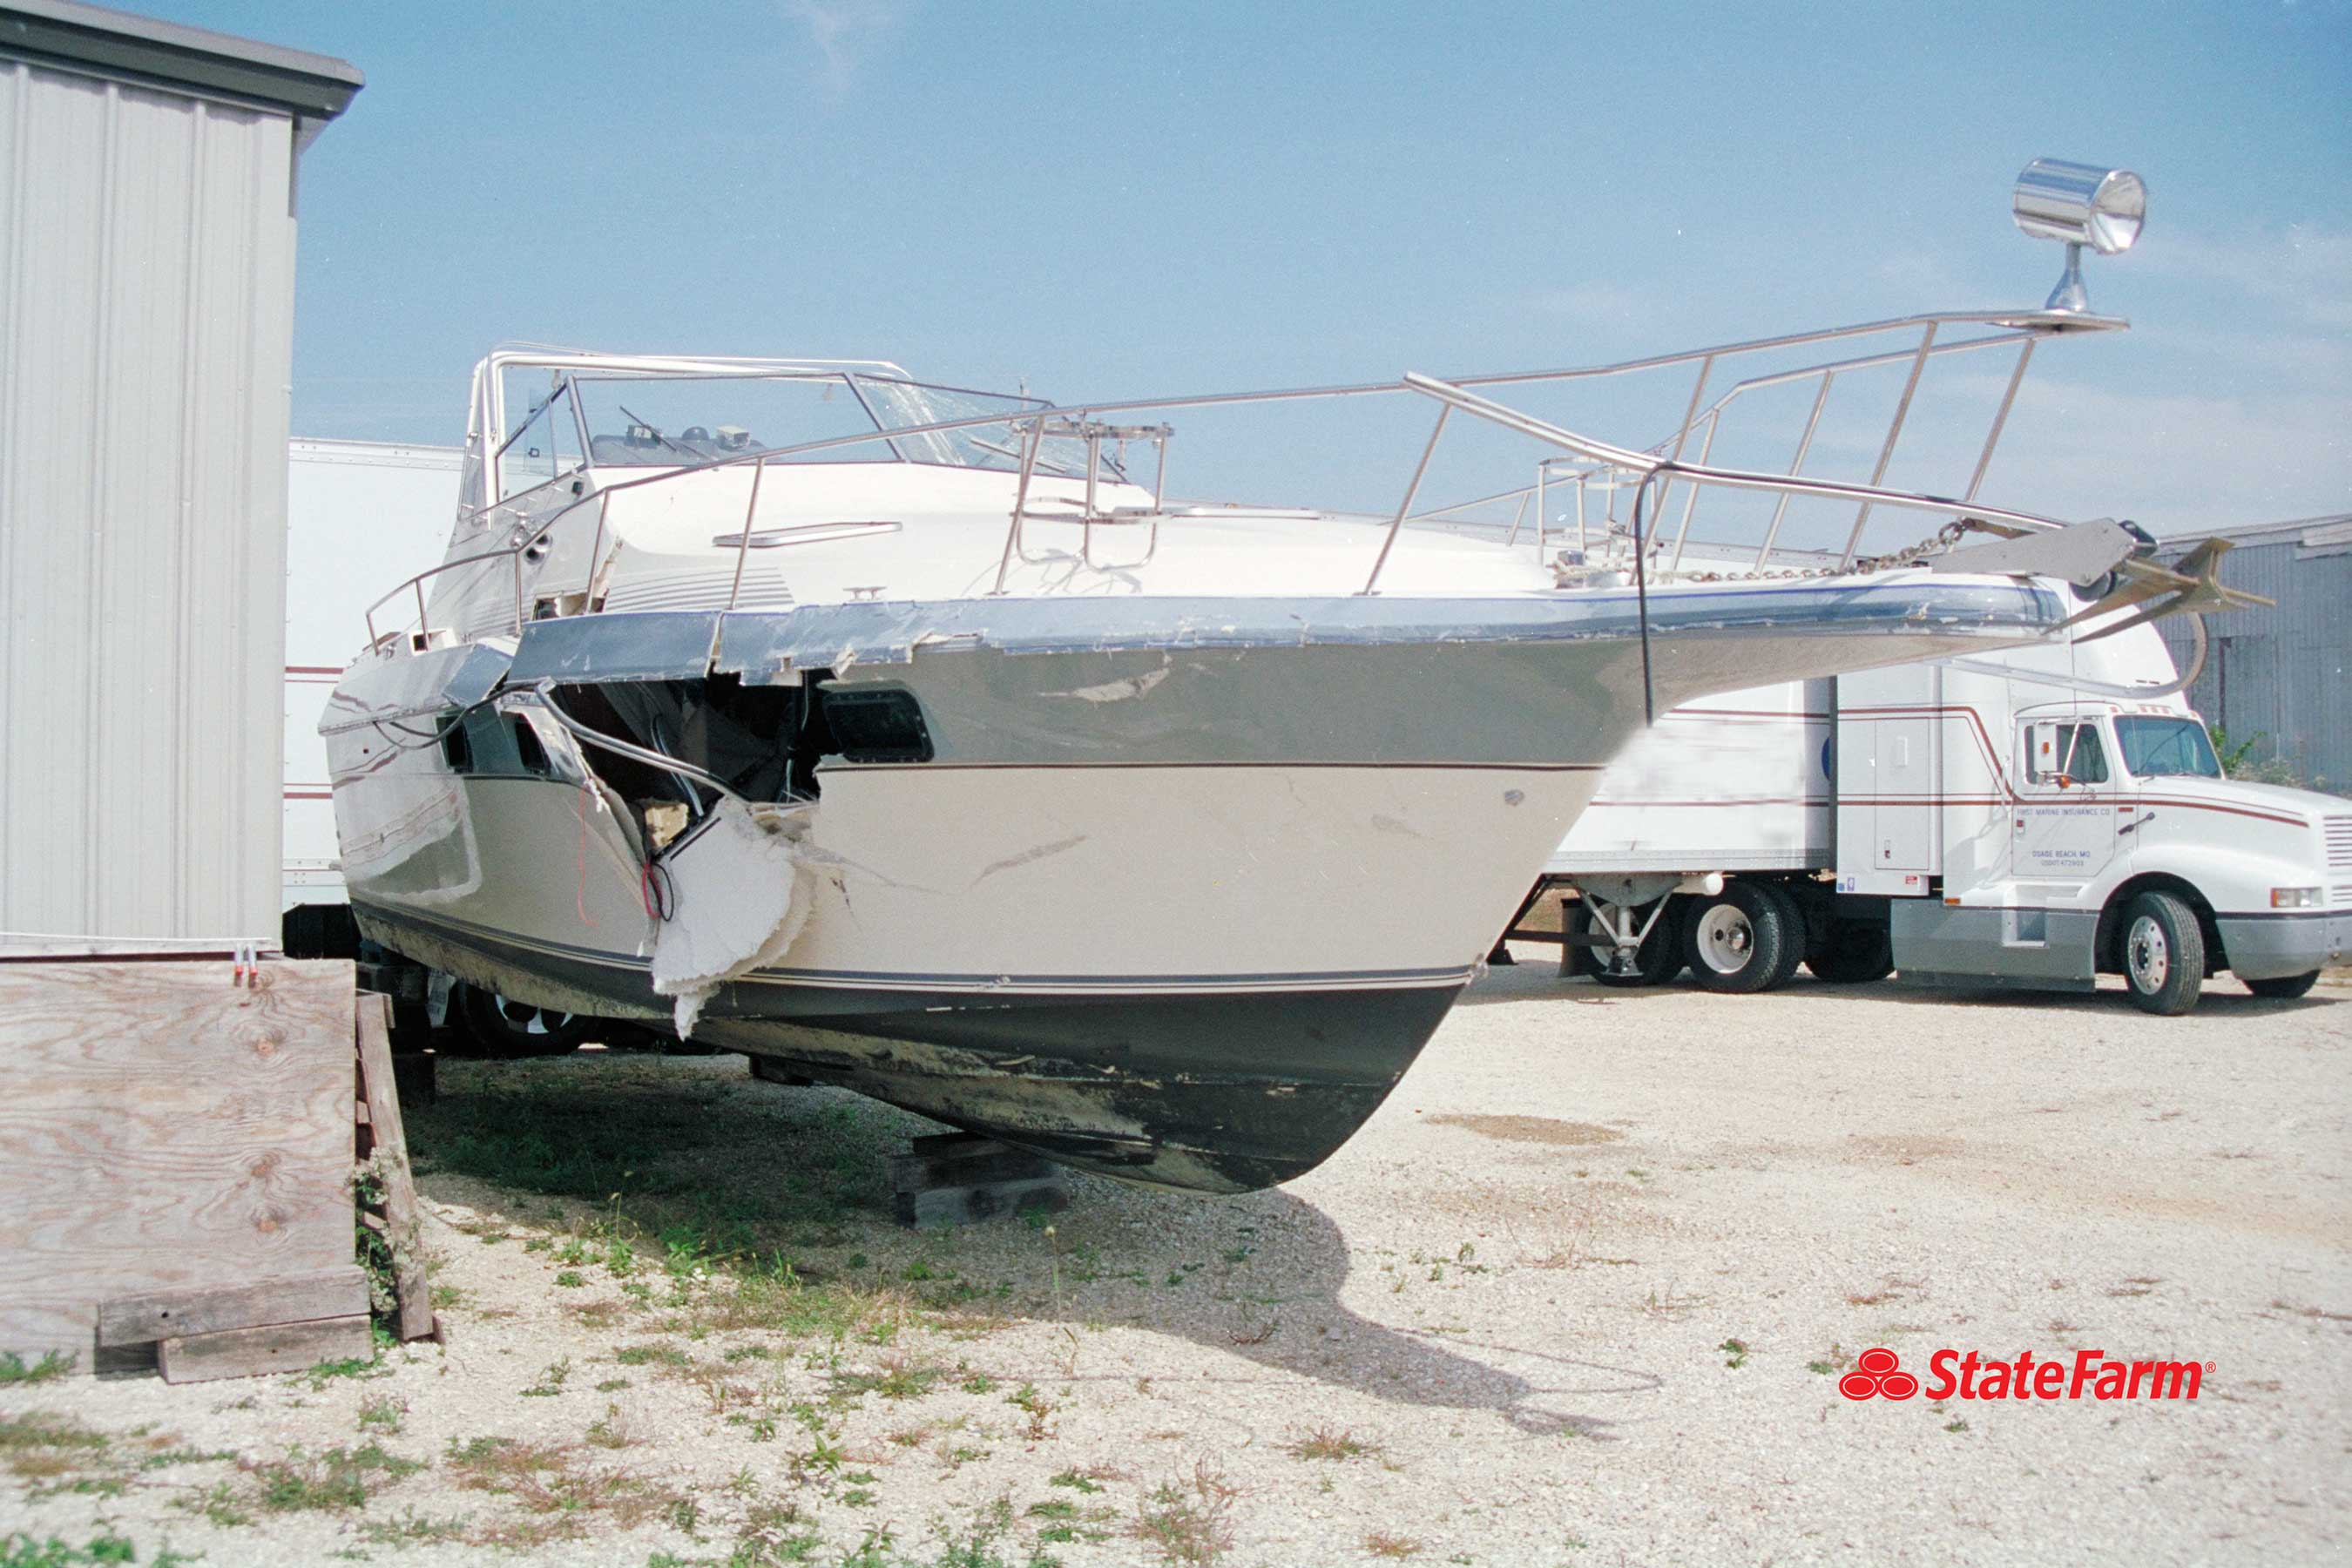 image of a severely damaged boat